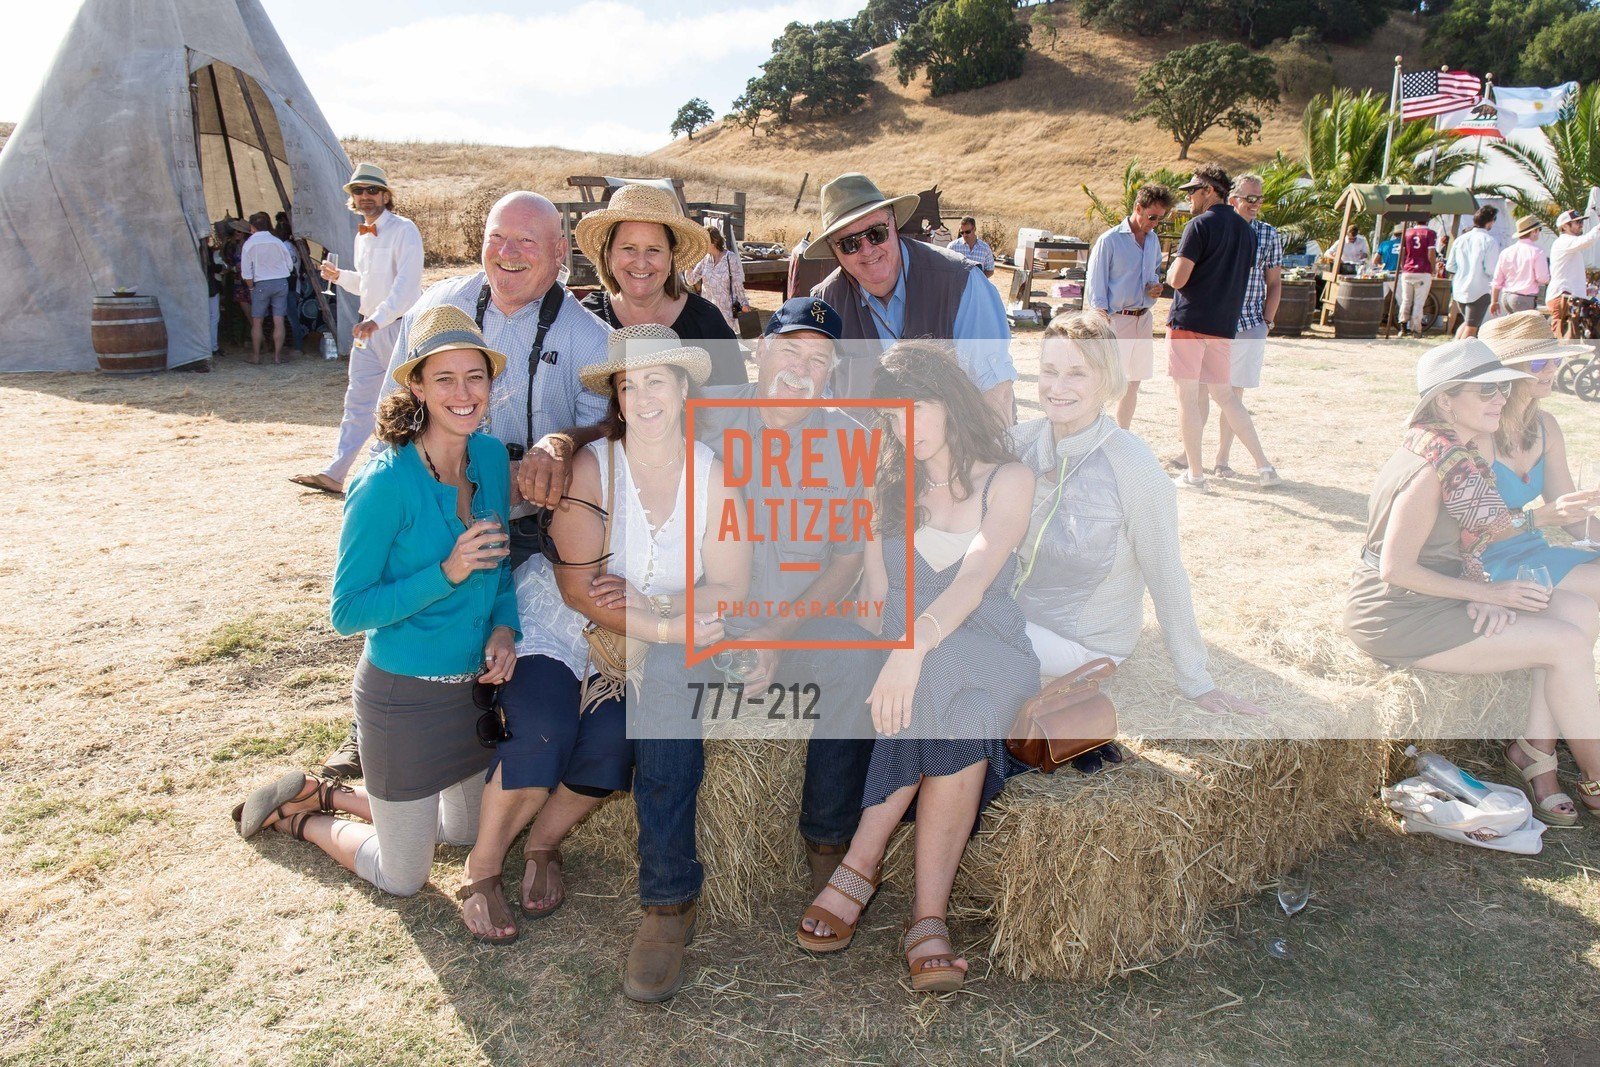 Jessica Baron, Alan Cooper, Diane Rowley, Sue Cooper, Jeff Rowley, Jim Murray, Stick & Ball Oyster Cup Polo Tournament, Cerro Pampa Polo Club, July 25th, 2015,Drew Altizer, Drew Altizer Photography, full-service agency, private events, San Francisco photographer, photographer california